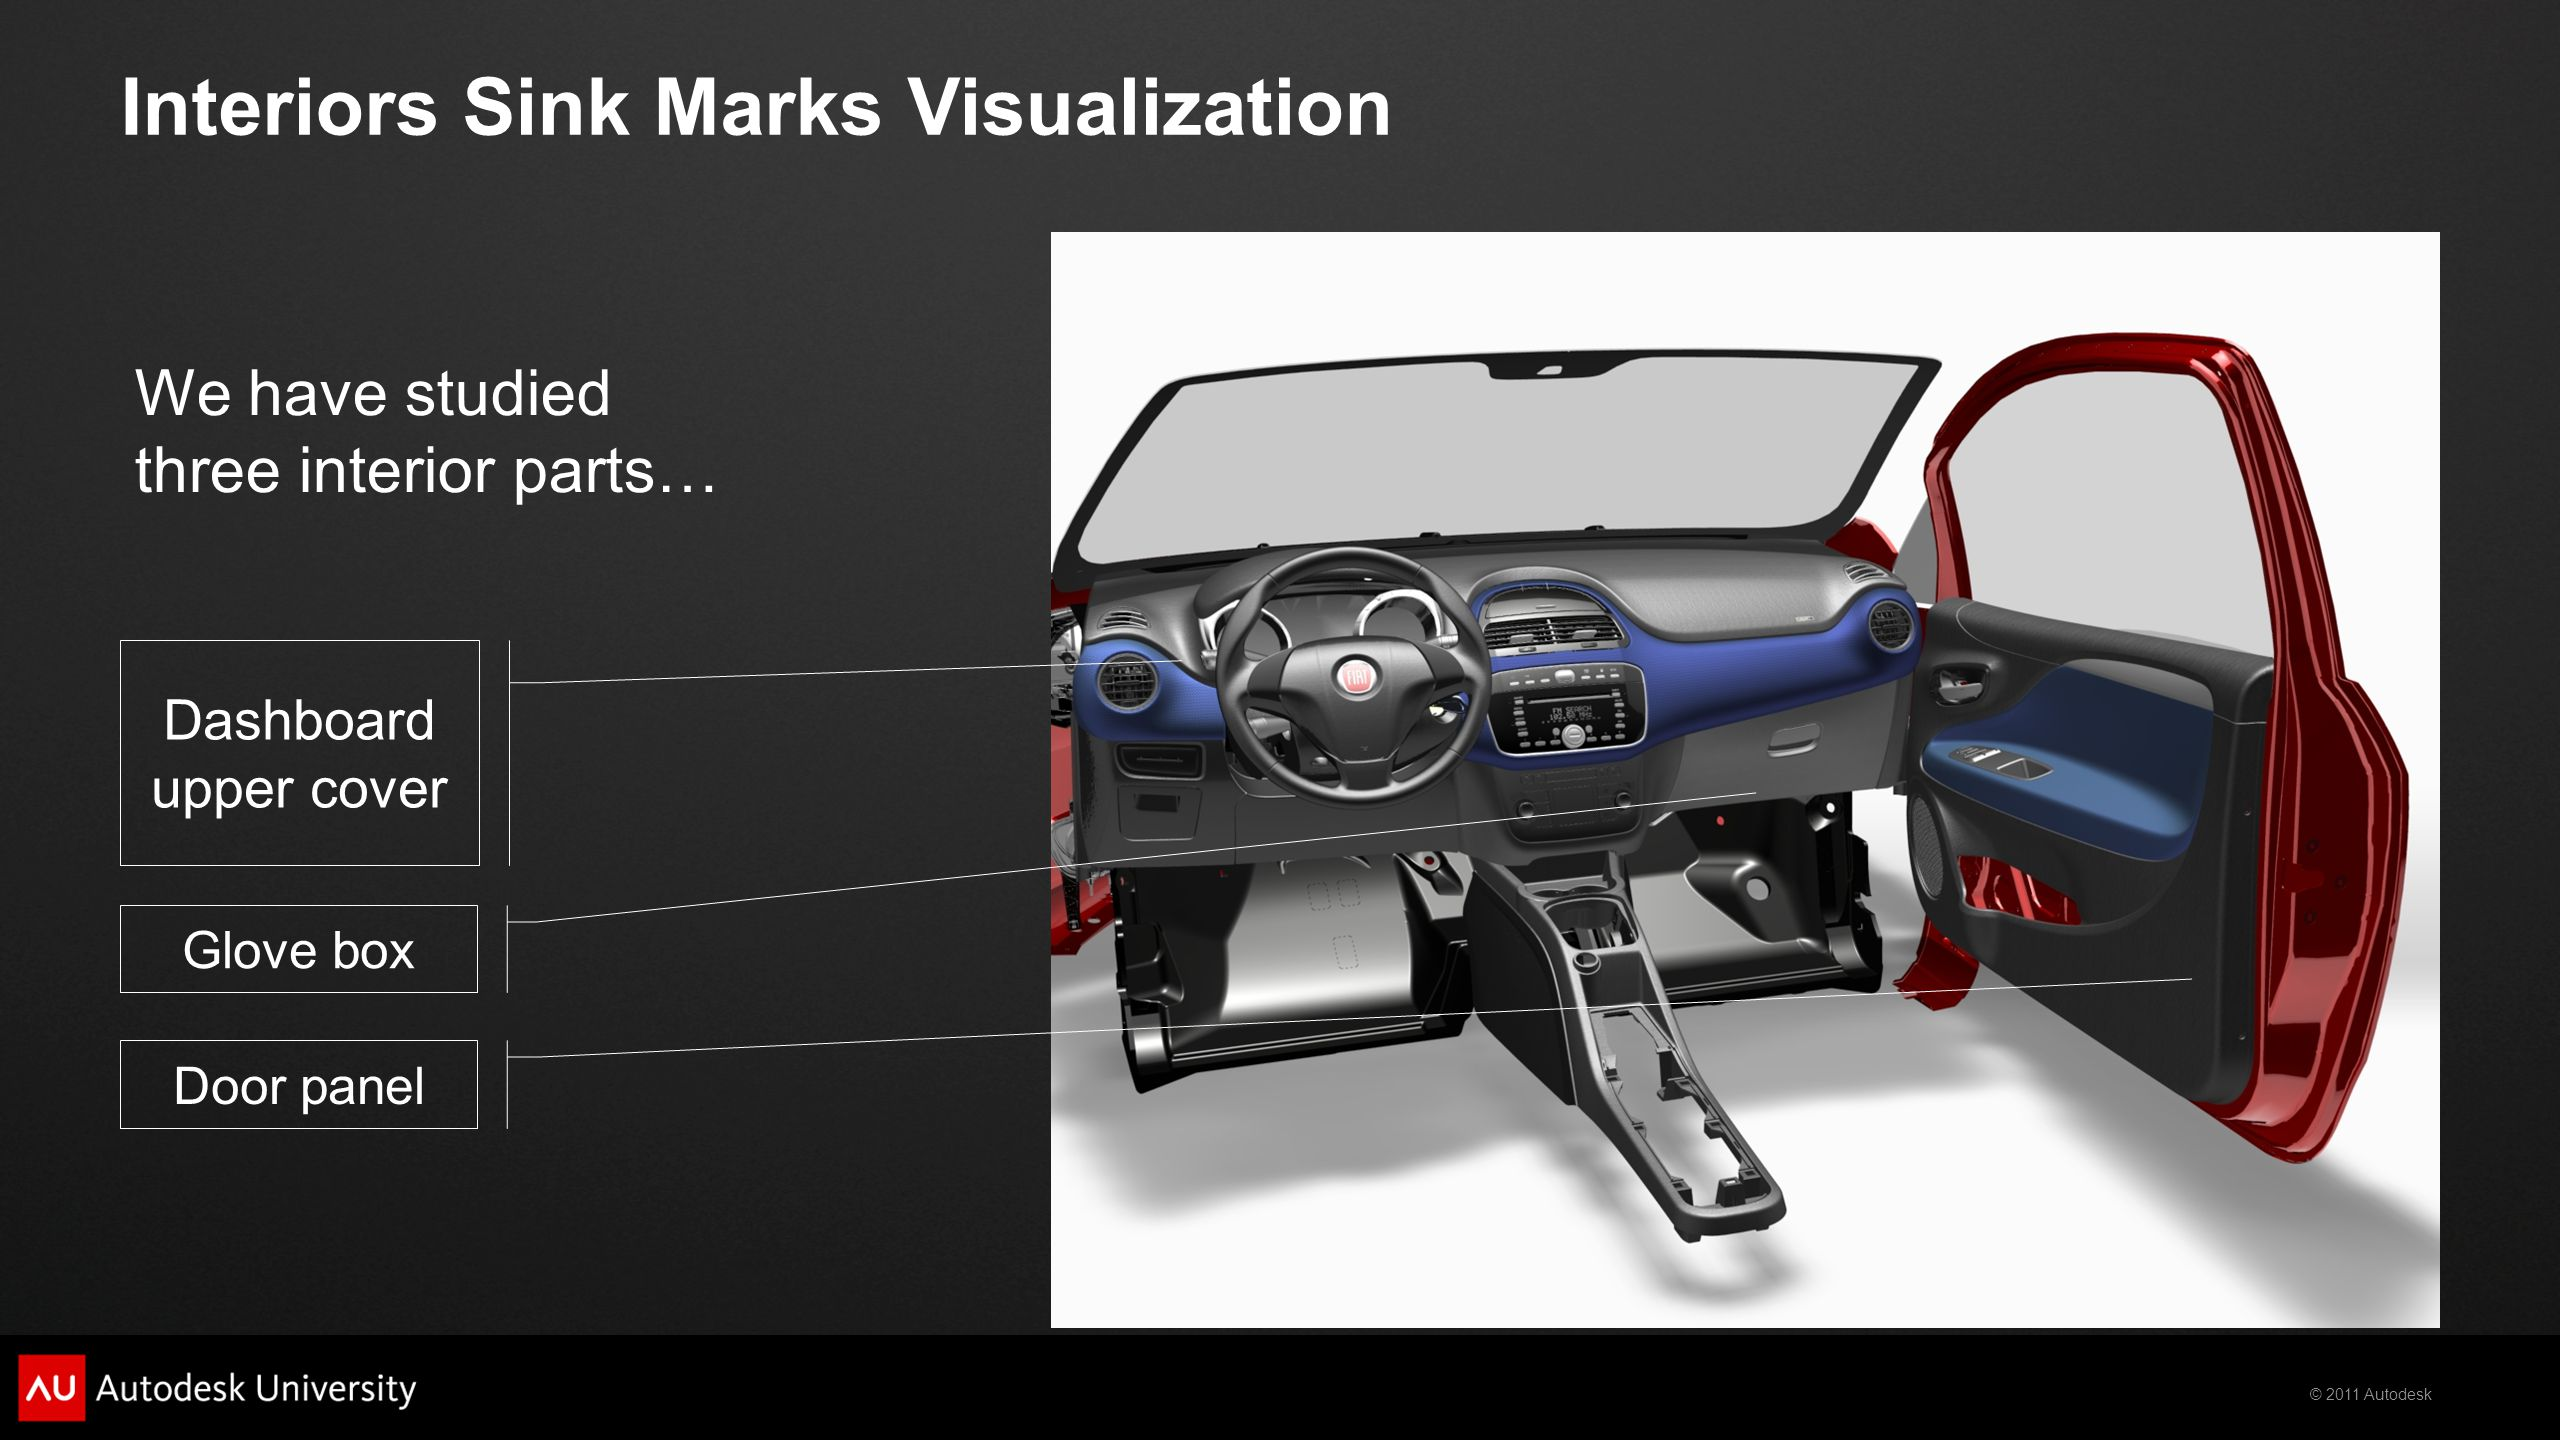 © 2011 Autodesk Interiors Sink Marks Visualization We have studied three interior parts… Door panel Glove box Dashboard upper cover